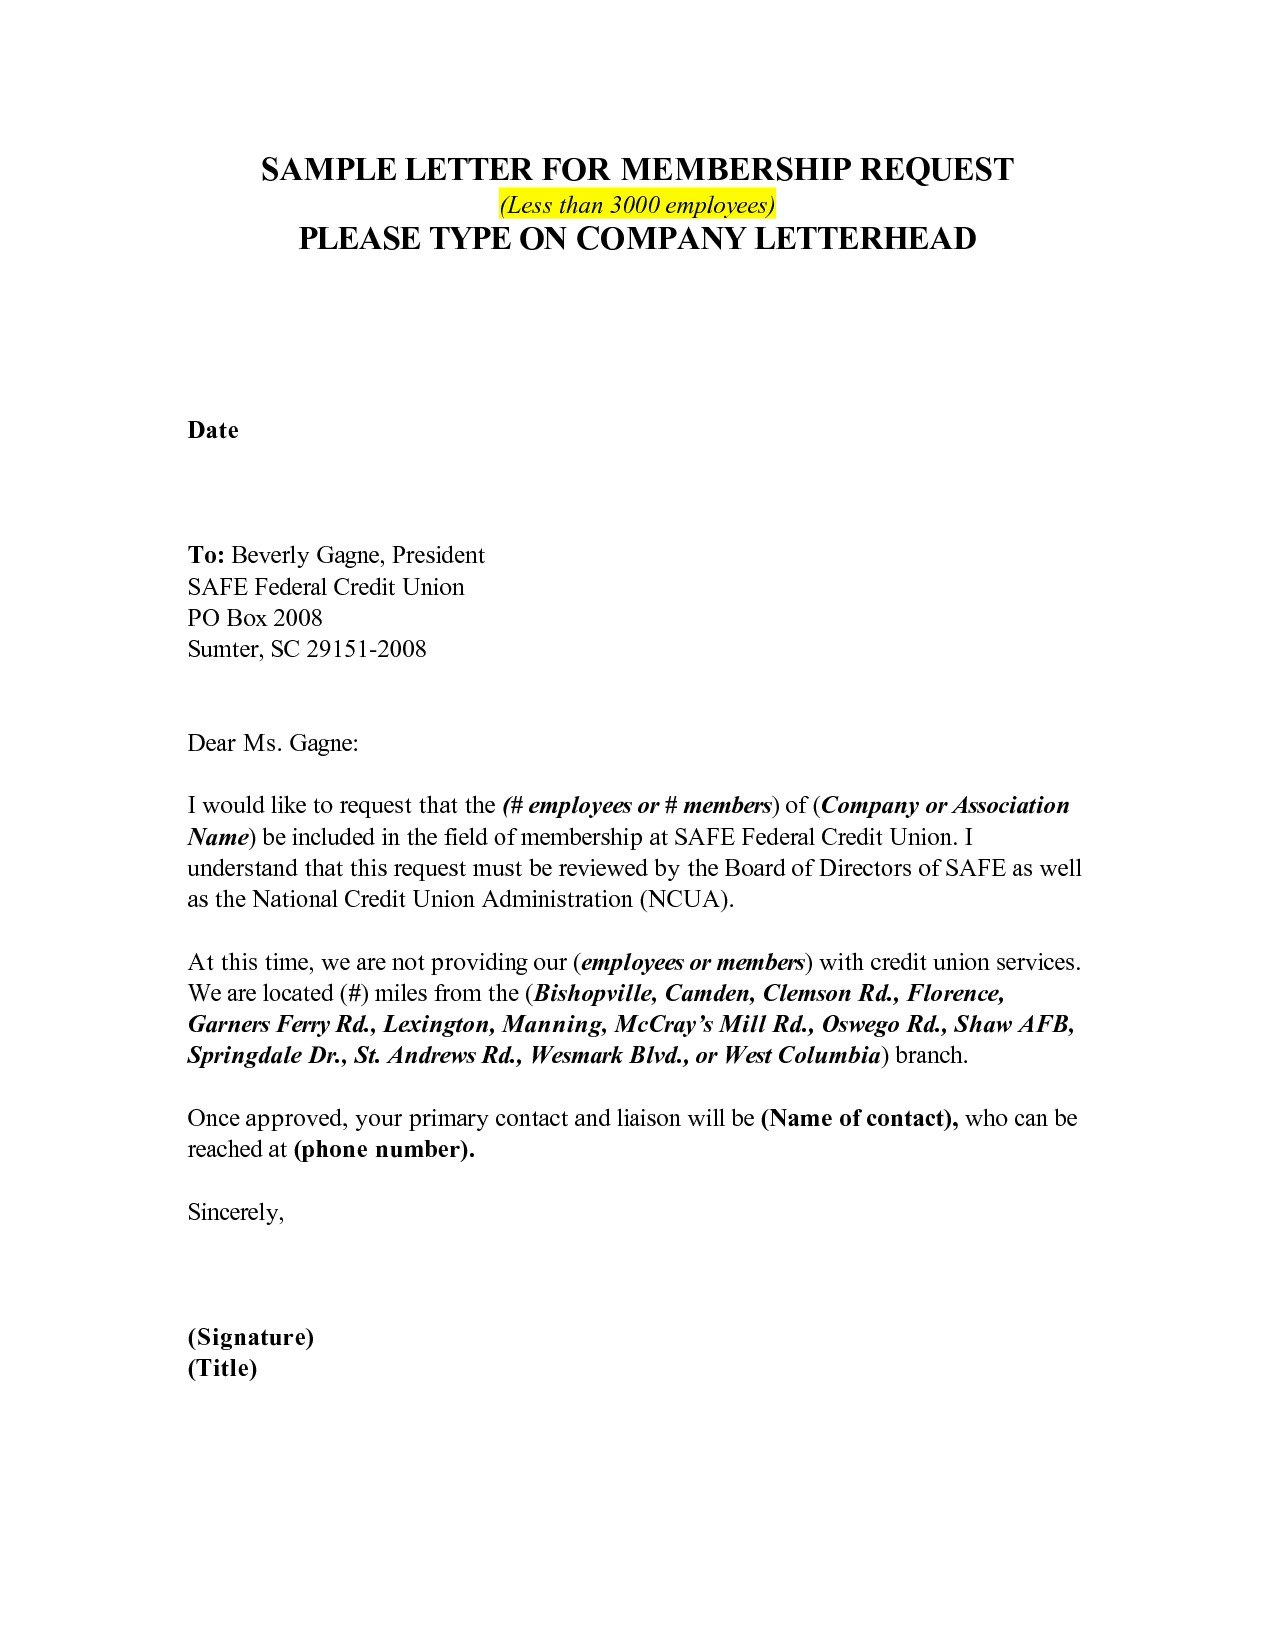 Contract Cancellation Letter Template Free Samples  Letter Cover Pertaining To Gym Membership Cancellation Letter Template Free